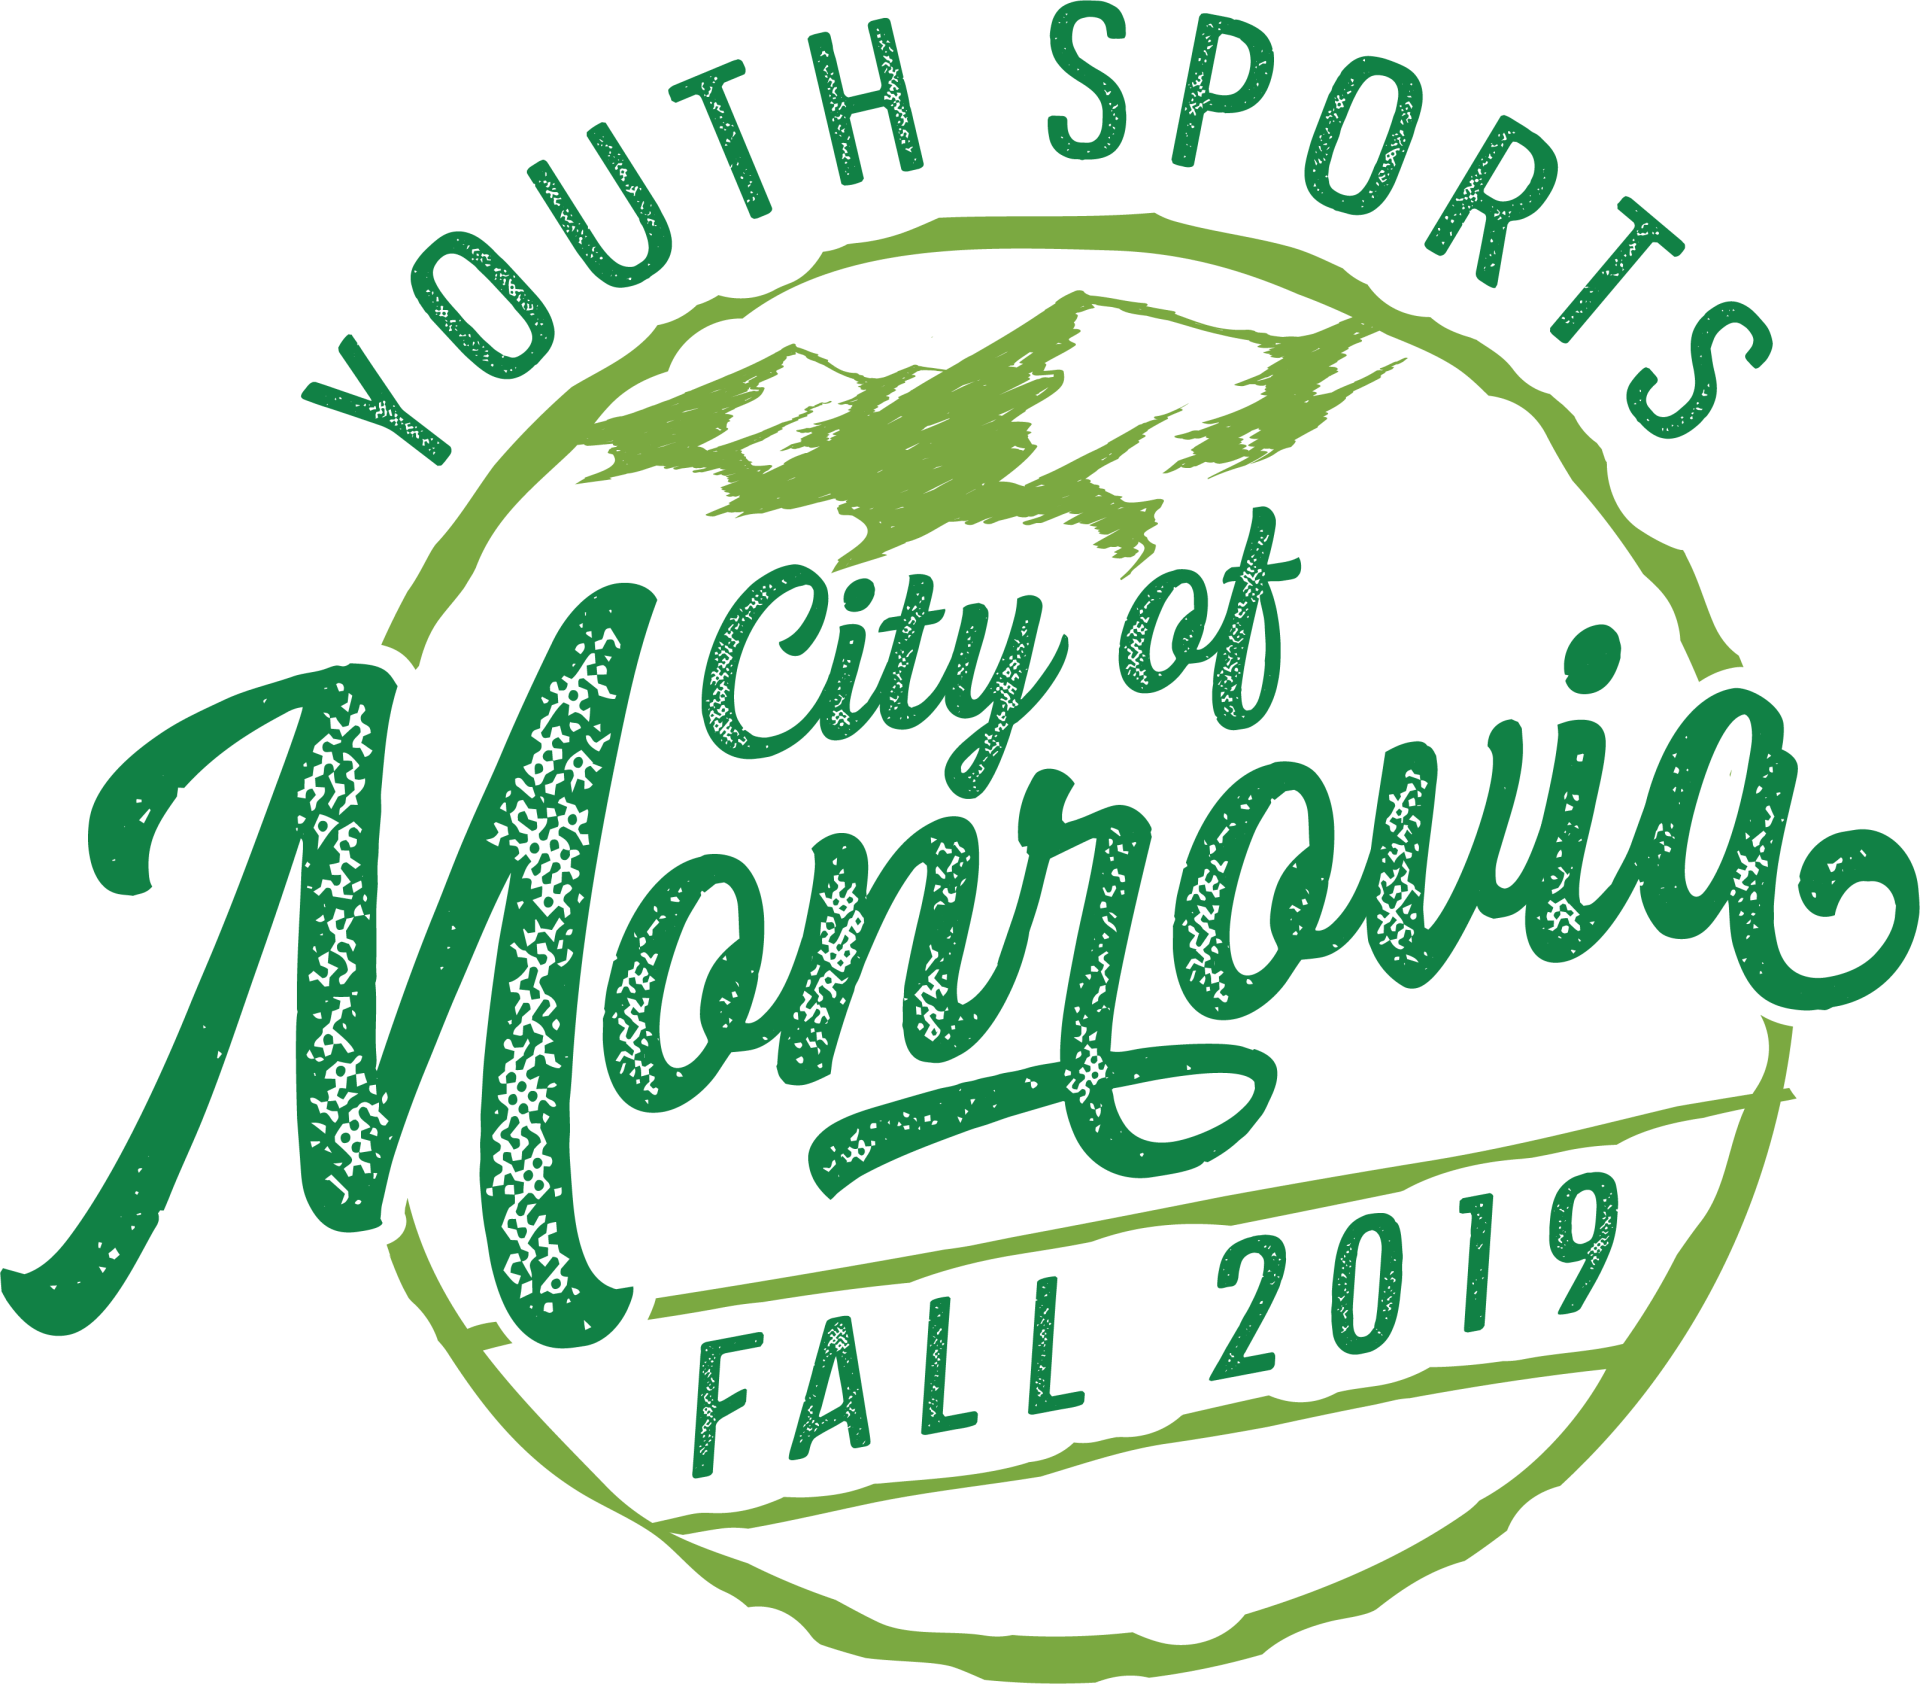 2019 Fall Youth Sports